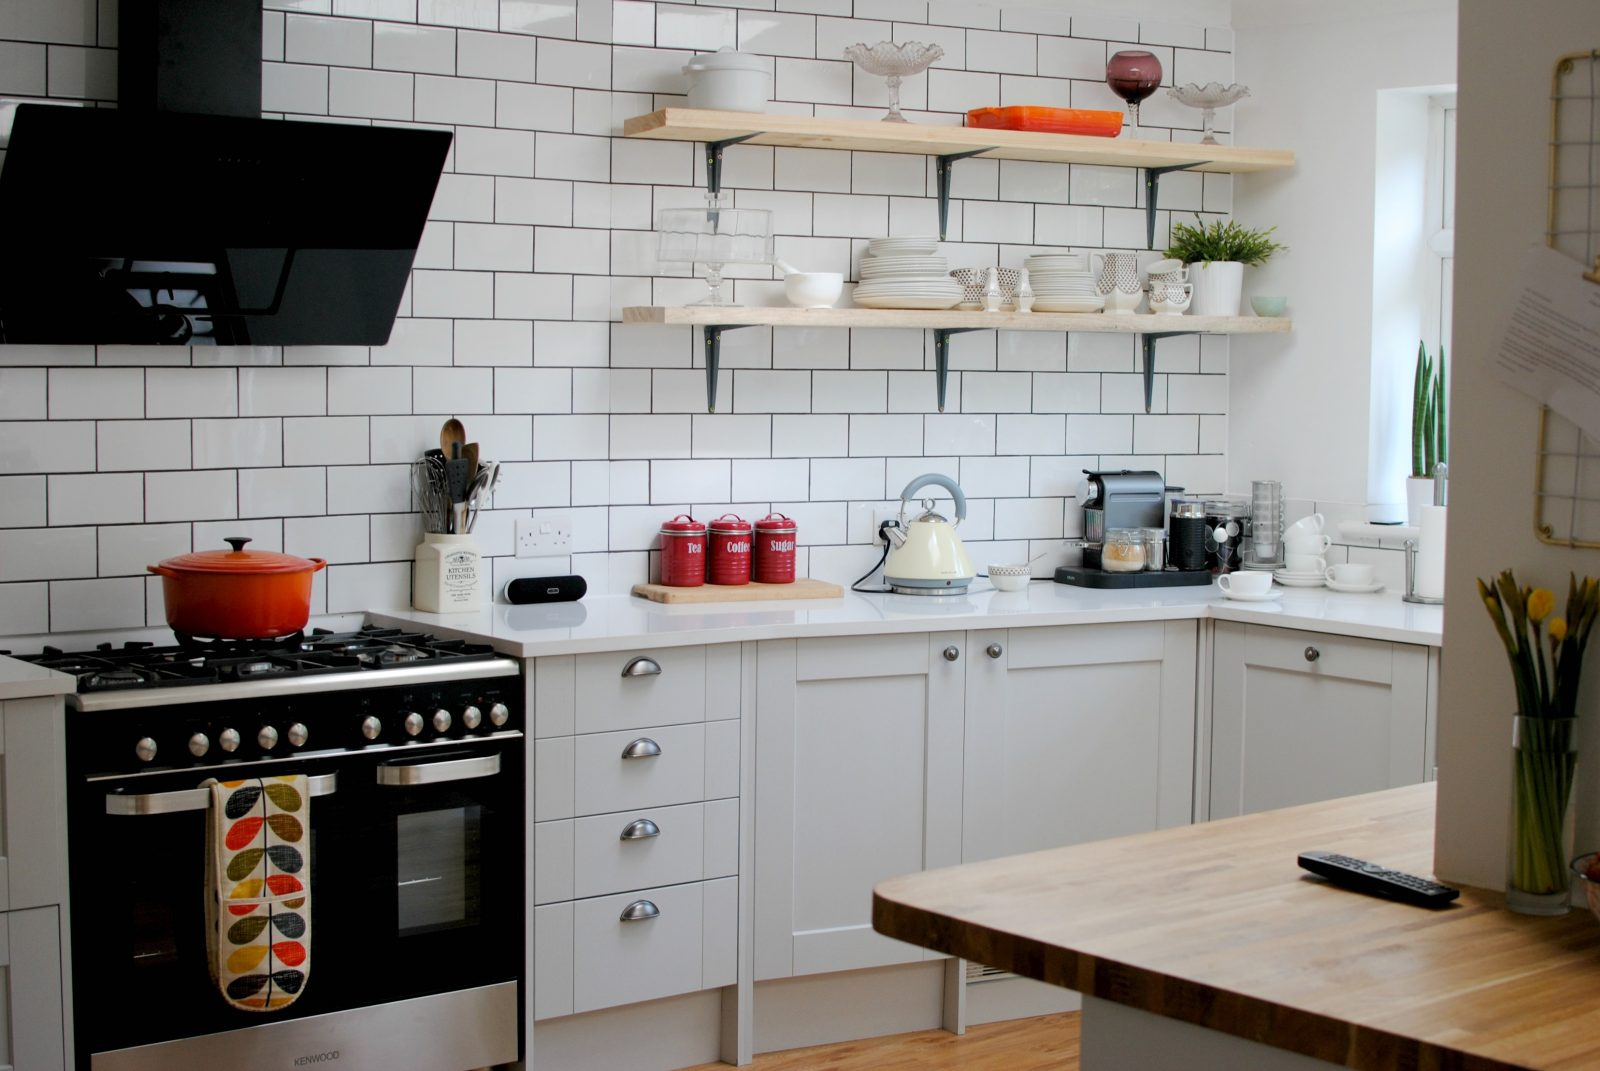 3 Ways to Check How Safe Your Kitchen Is